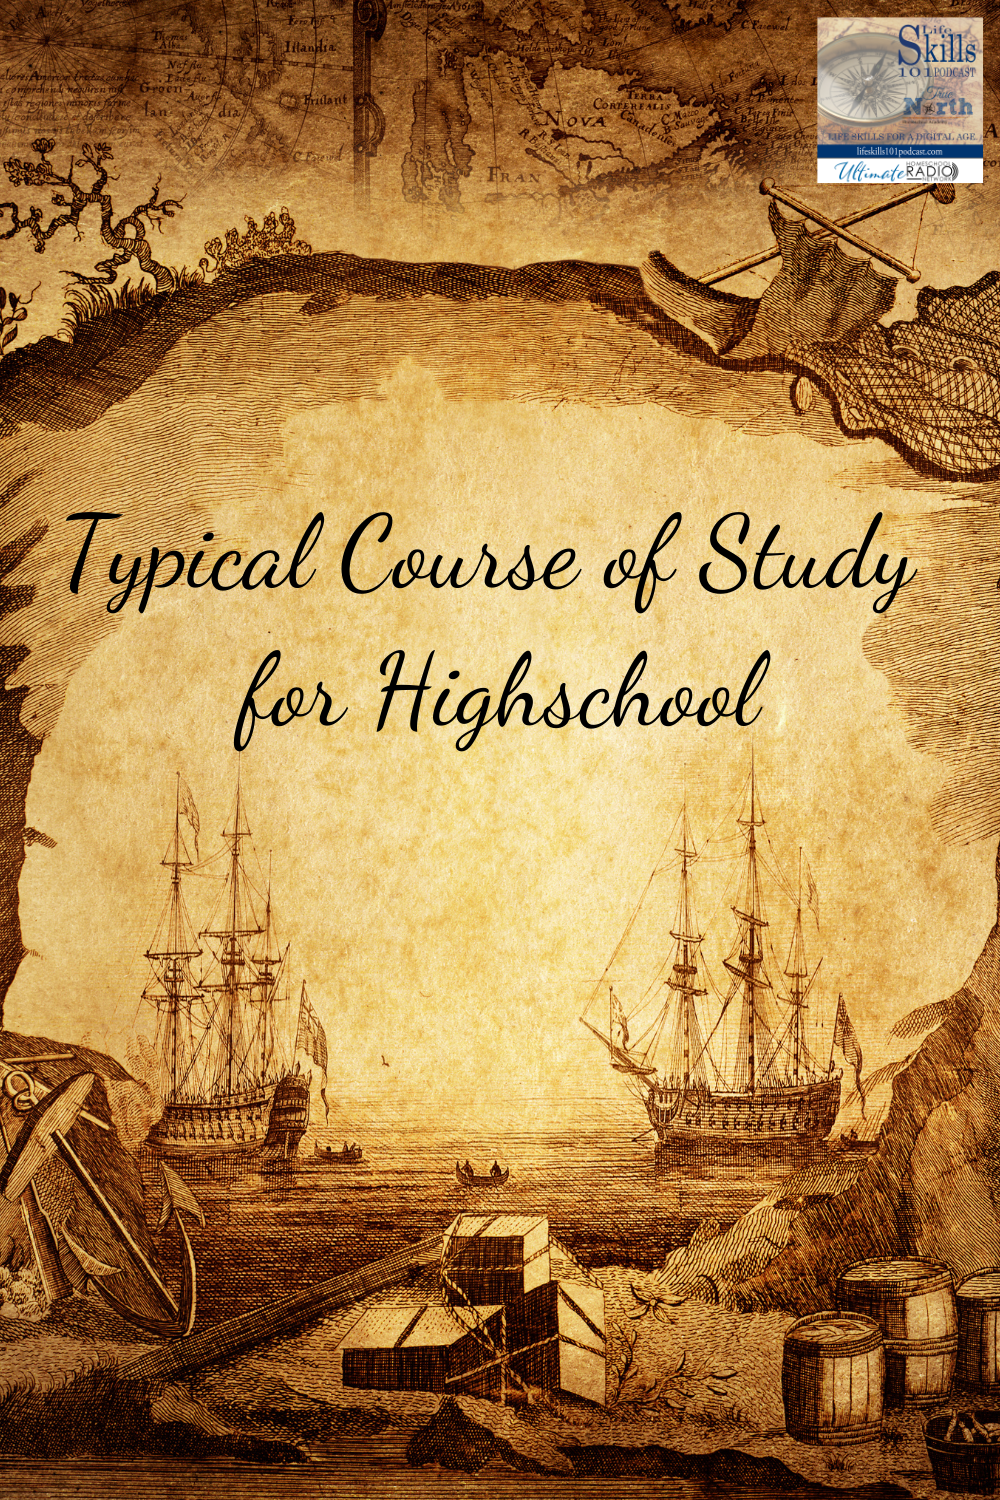 One of the big concerns about homeschooling high school is determining what to study.